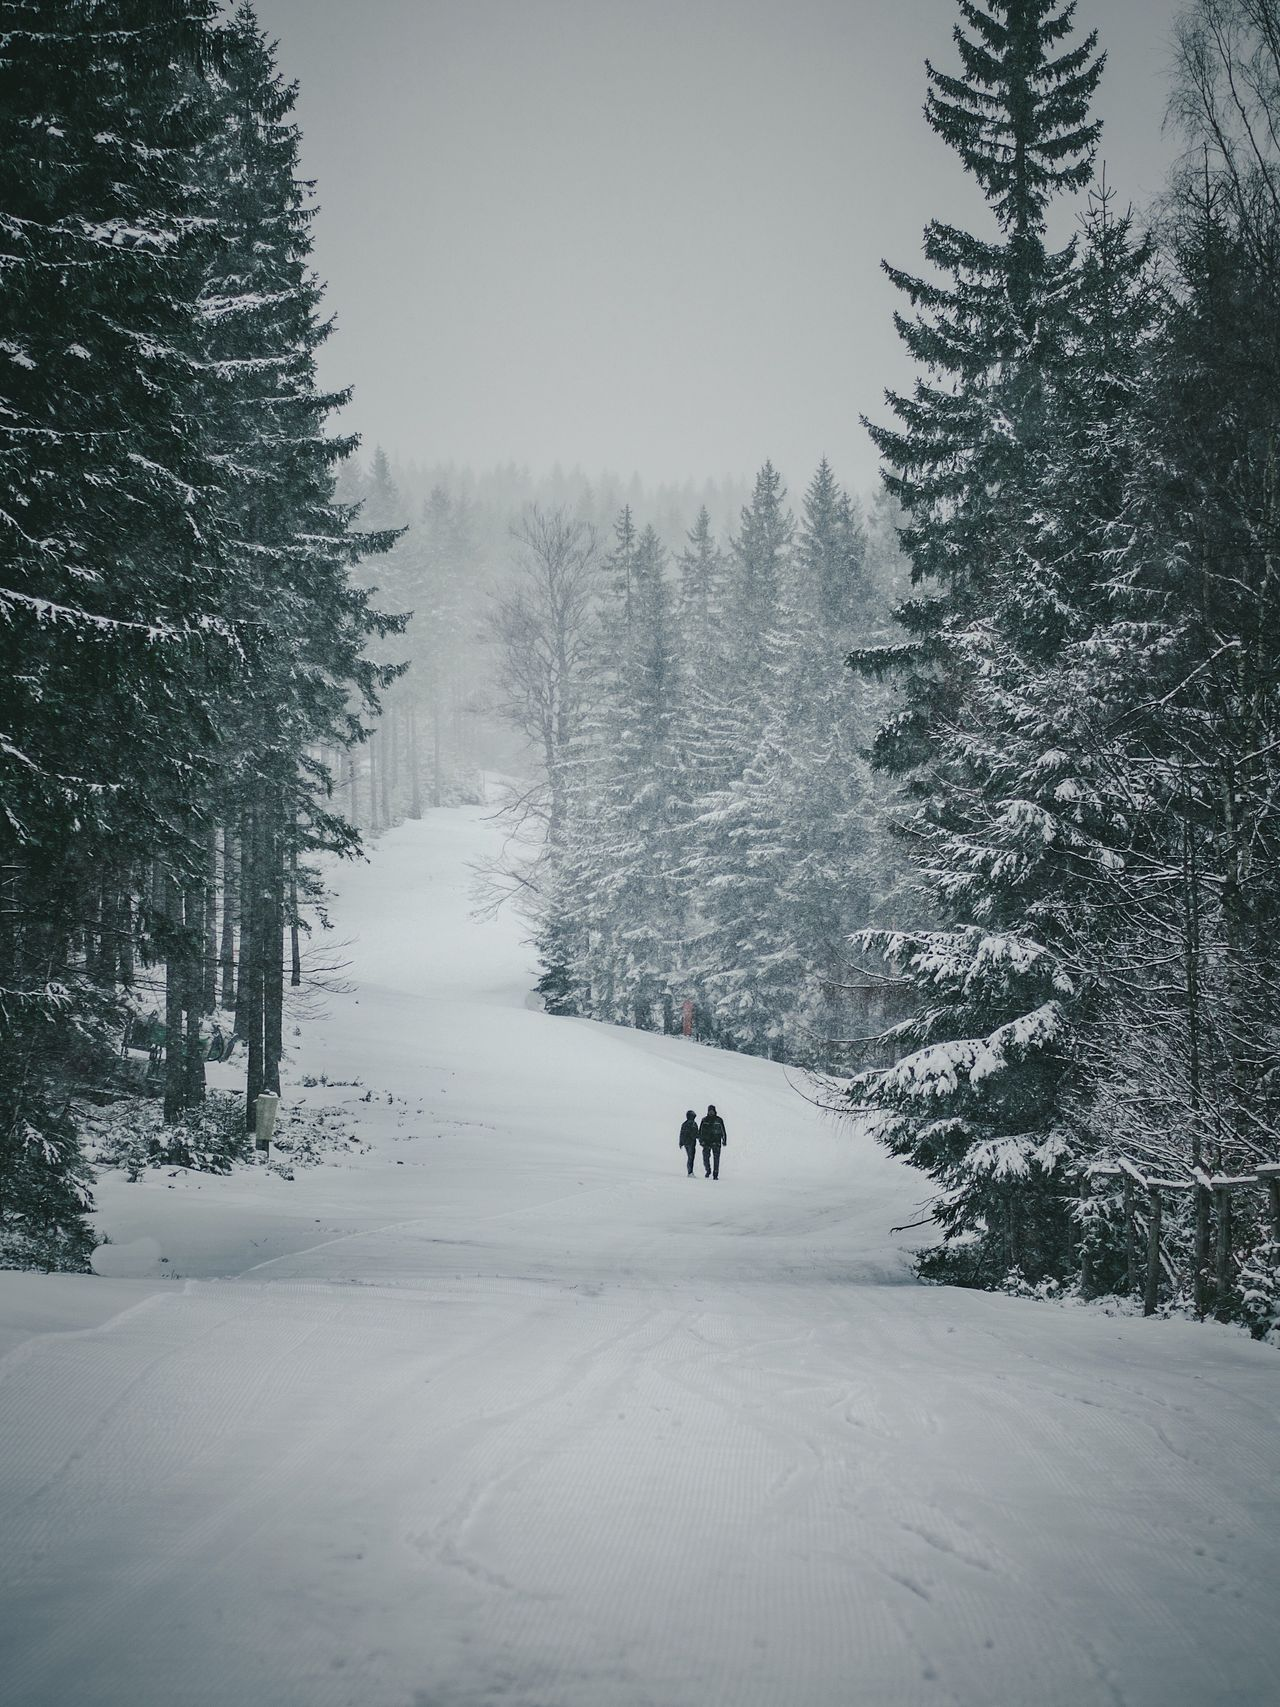 Snow Winter Cold Temperature Tree Nature Beauty In Nature Day Outdoors Real People Scenics One Person Sky Mammal